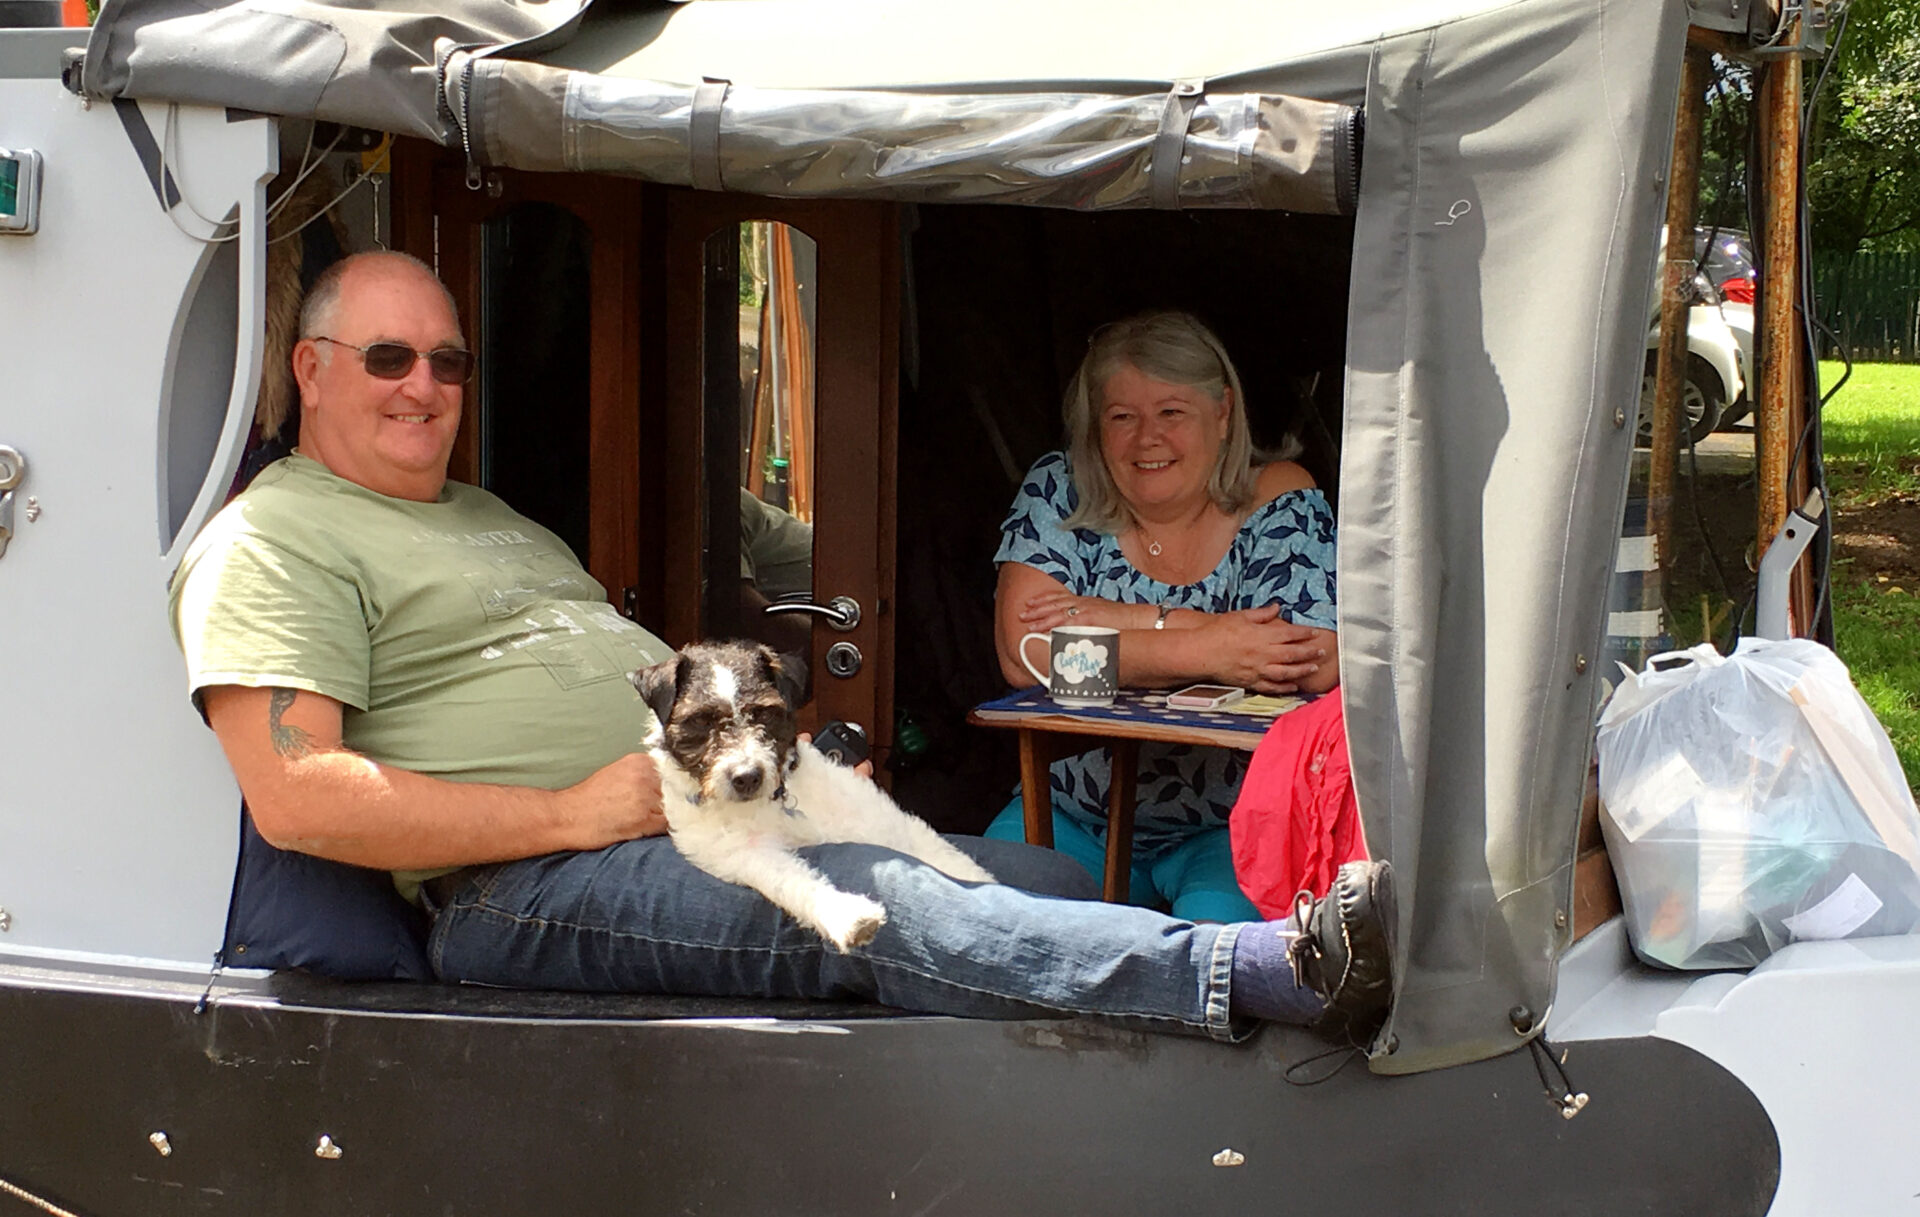 Steve, wife Chris and Smudge the dog chilling near to Chester. Well and truly happy on board.